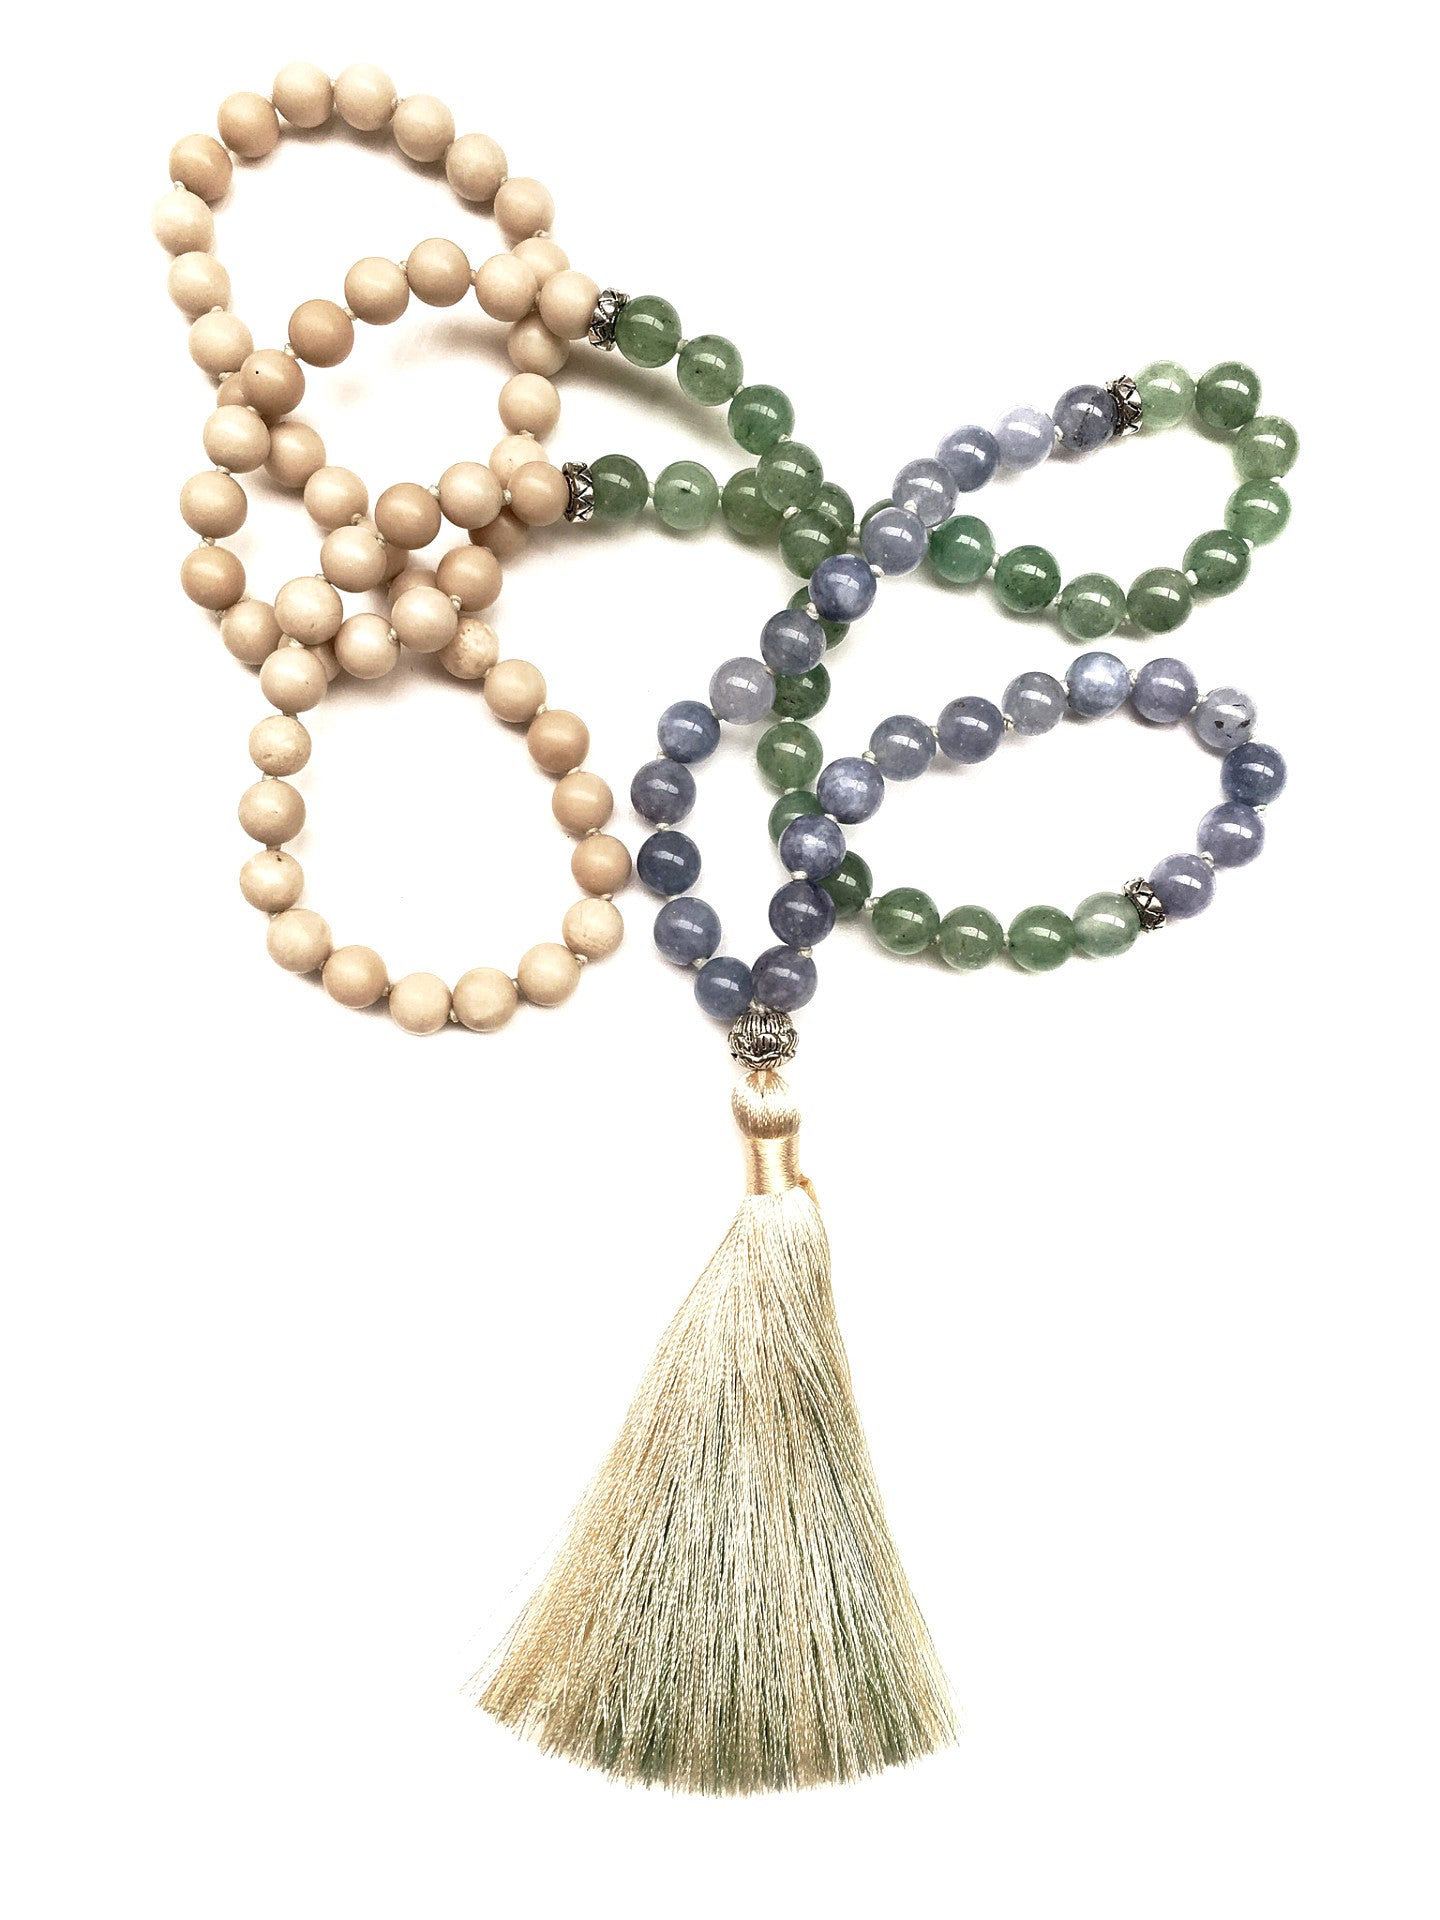 Aquamarine amazonite, riverstone mala beads tassel